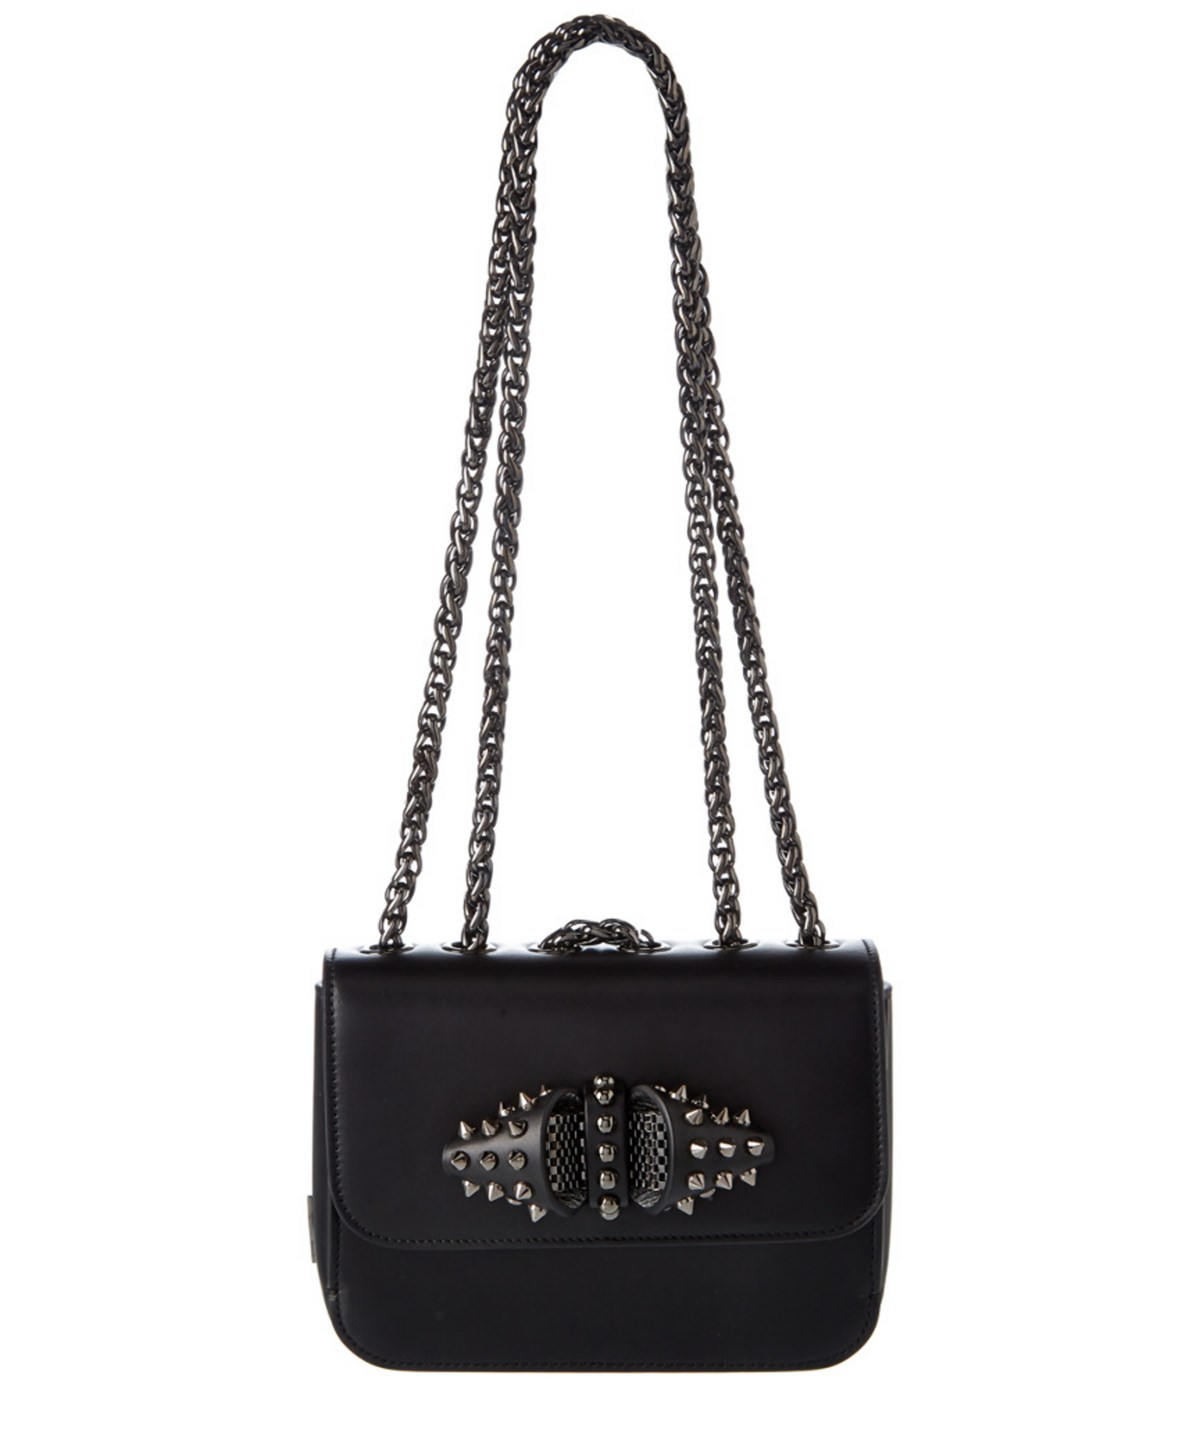 CHRISTIAN LOUBOUTIN Sweet Charity Baby Spiked Leather Chain Crossbody Bag,  Black